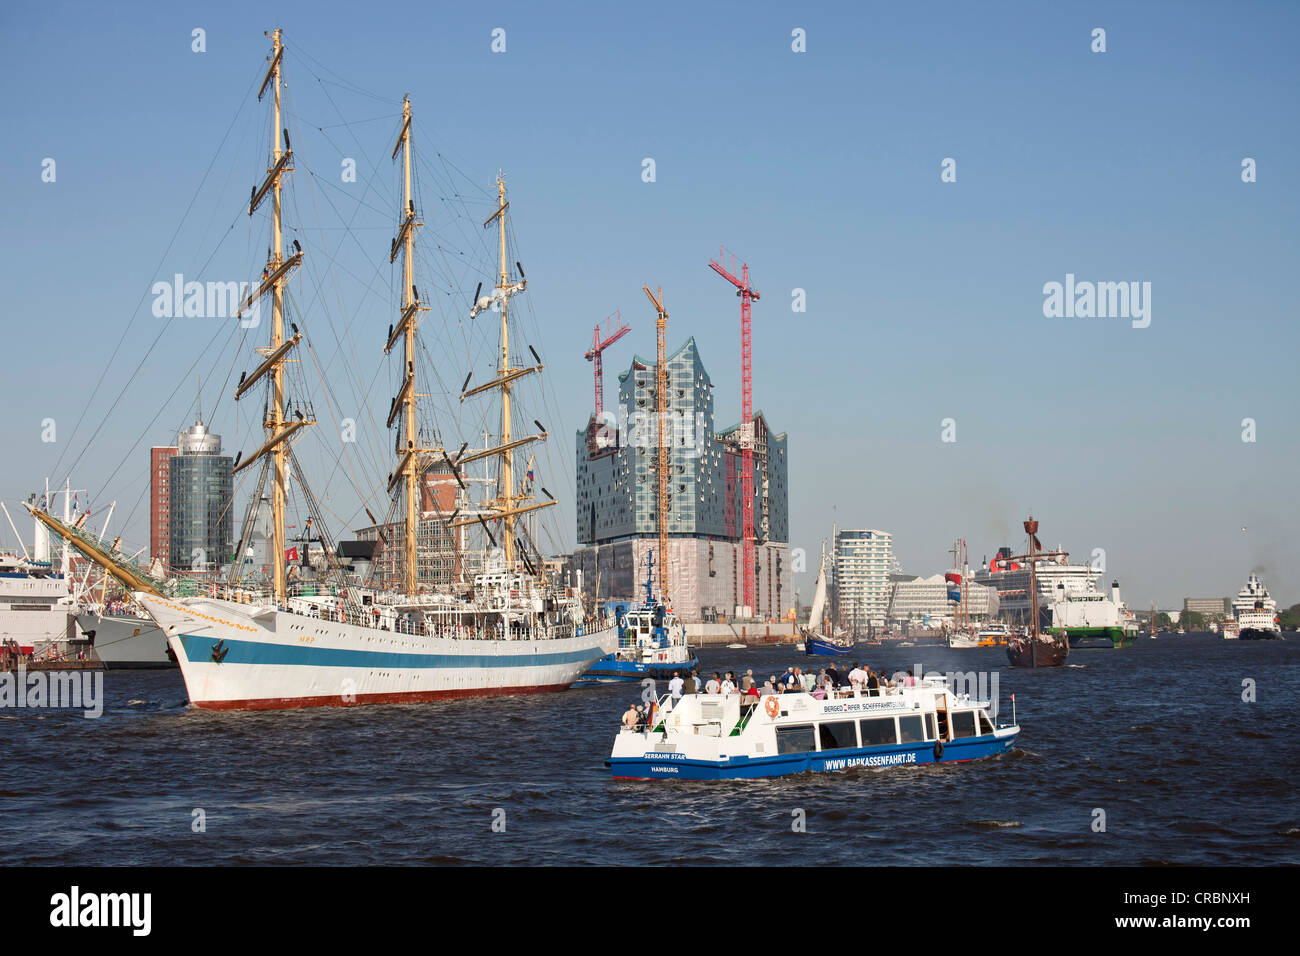 Three-masted Russian ship, Mir, during the parade of ships in front of the construction site of the Elbe Philharmonic - Stock Image